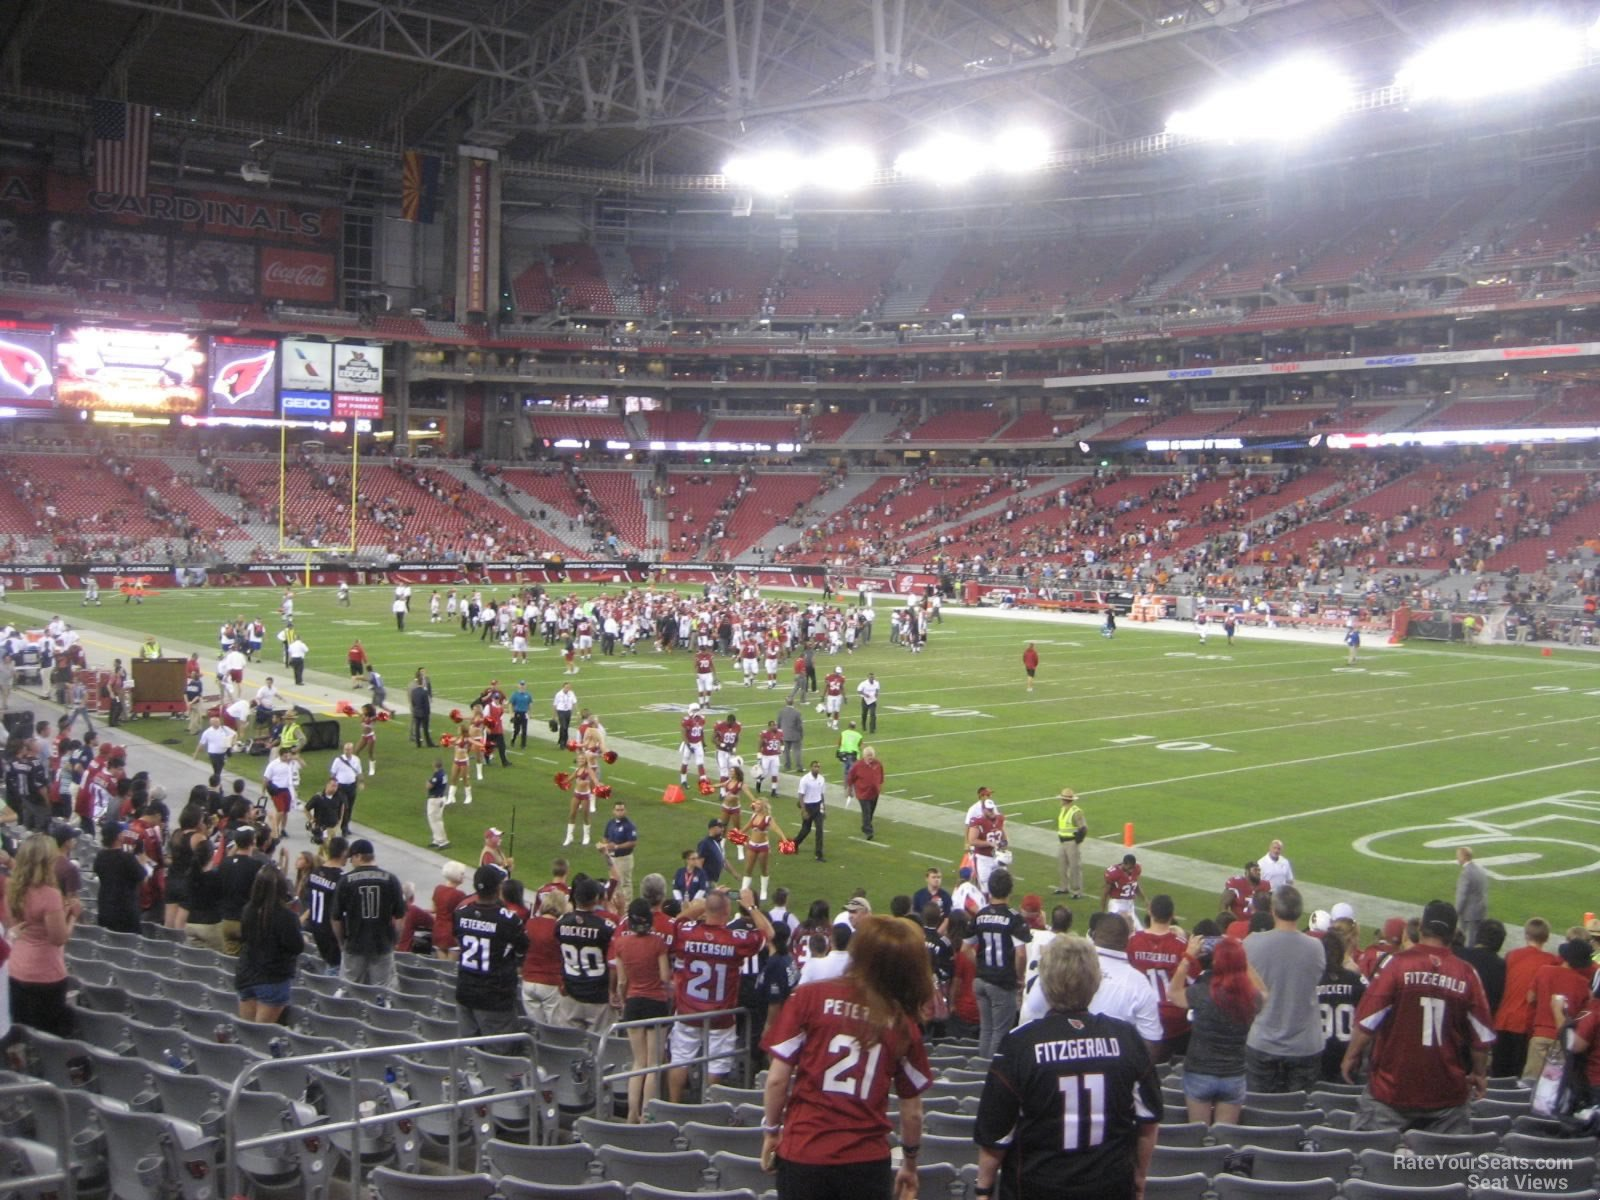 Section 102, Row 20